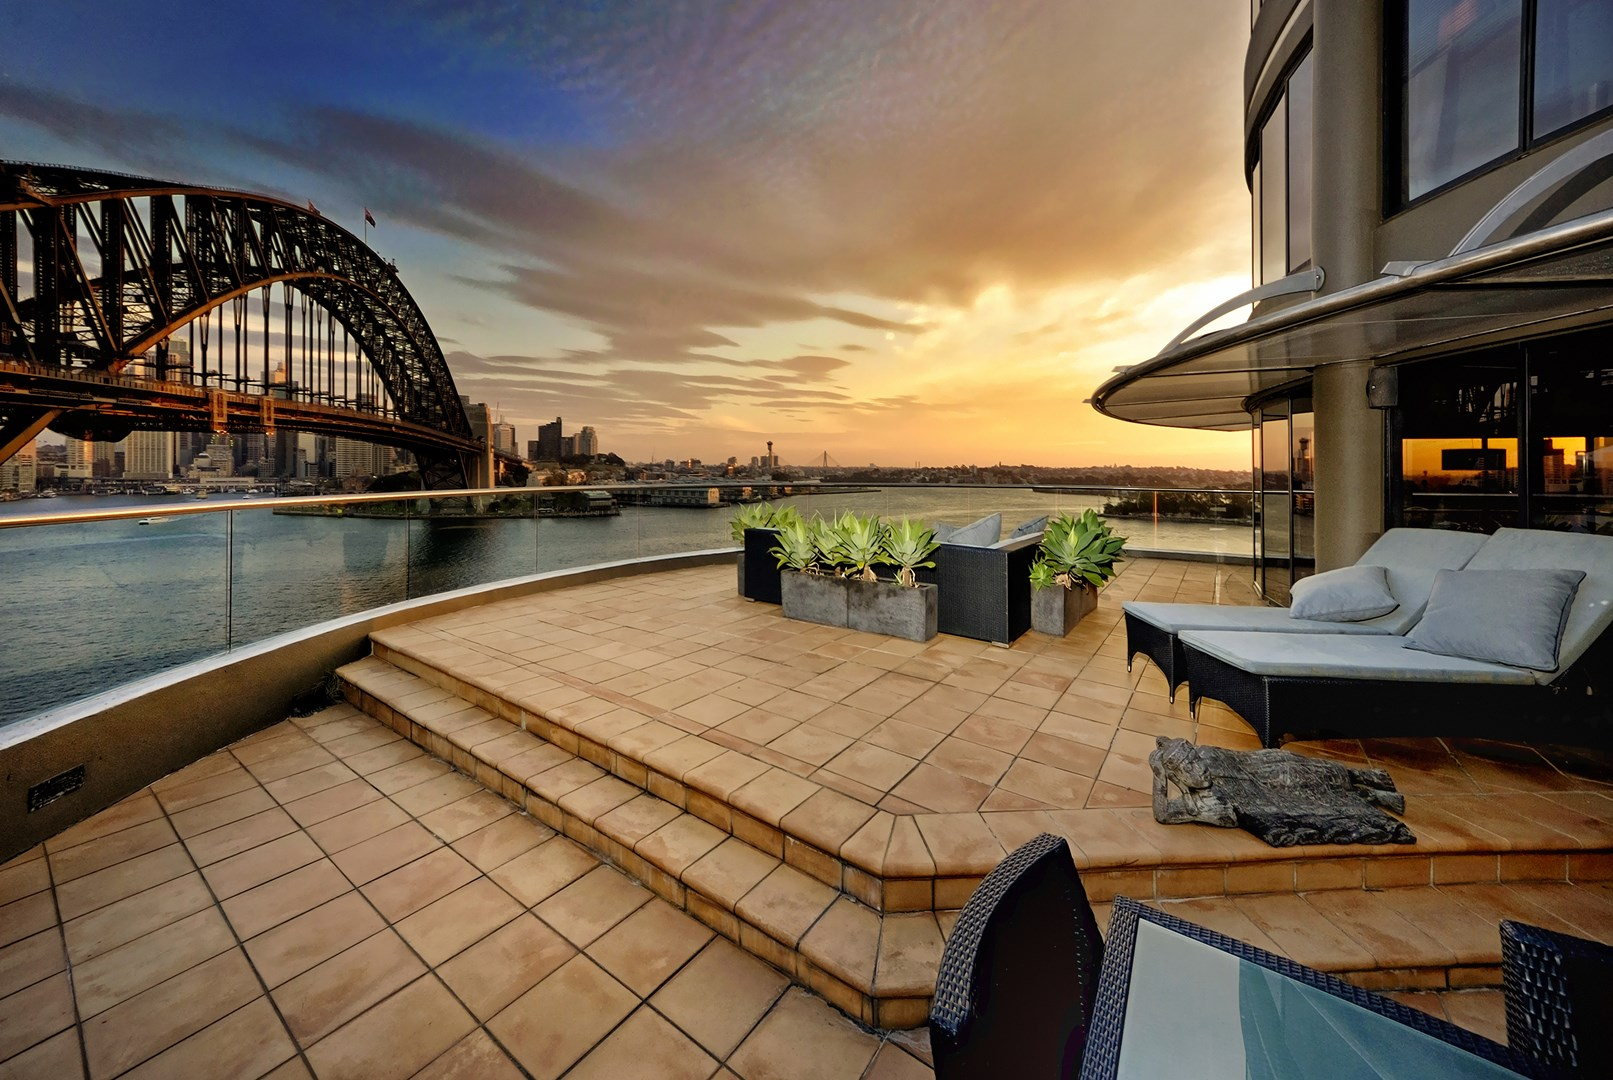 Incredible apartment overlooking sydney harbour for sale 3 bedroom apartments in sydney australia